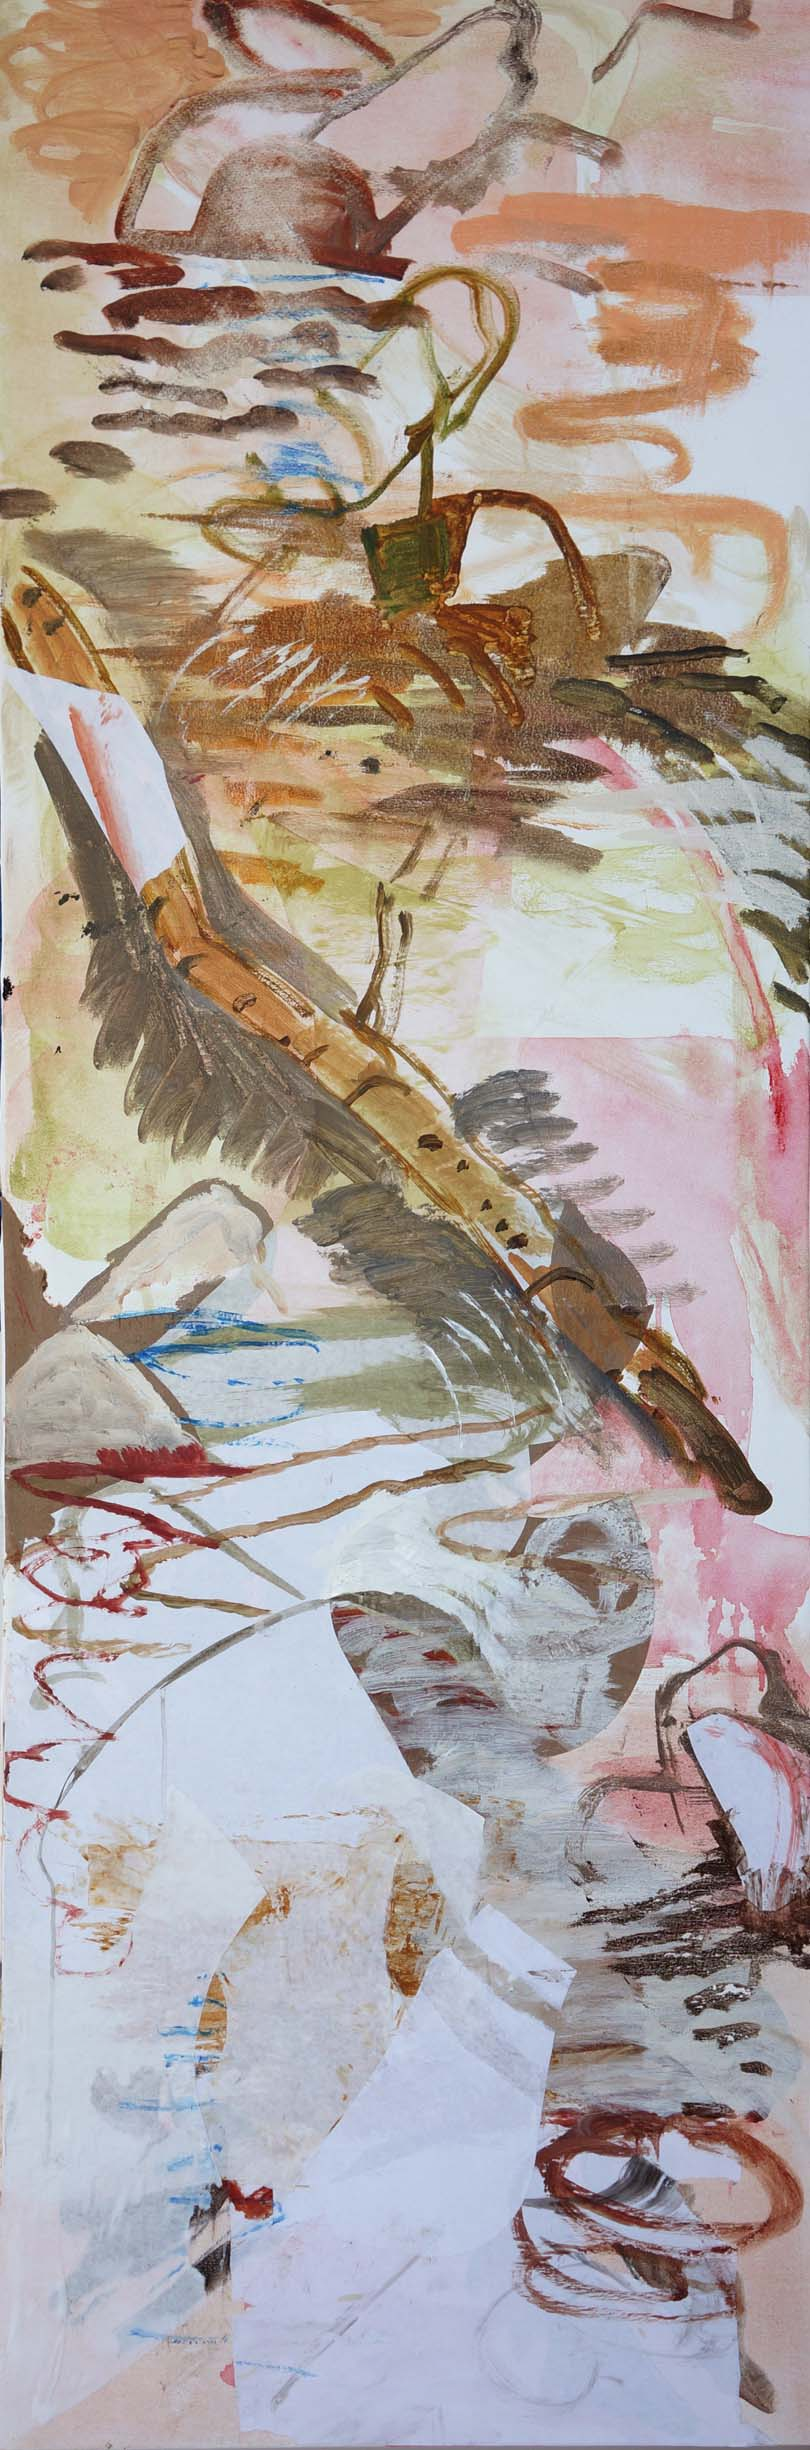 "song creek   78x26""  acrylic & collages paper on canvas"